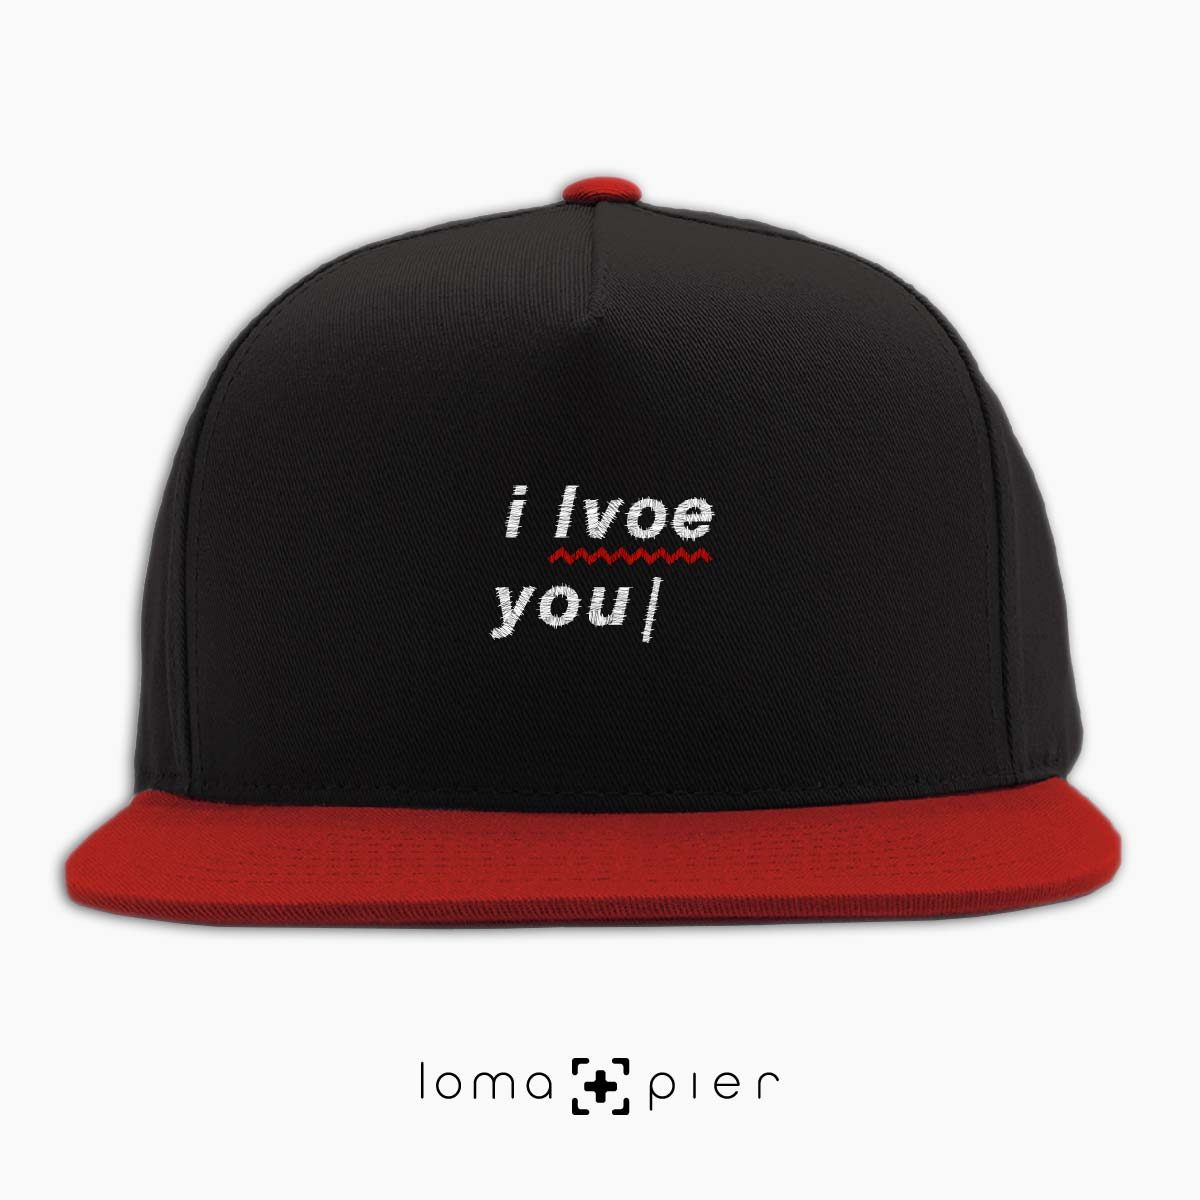 I LVOE YOU typography embroidered on a black and red classic snapback hat with white thread by loma+pier hat store